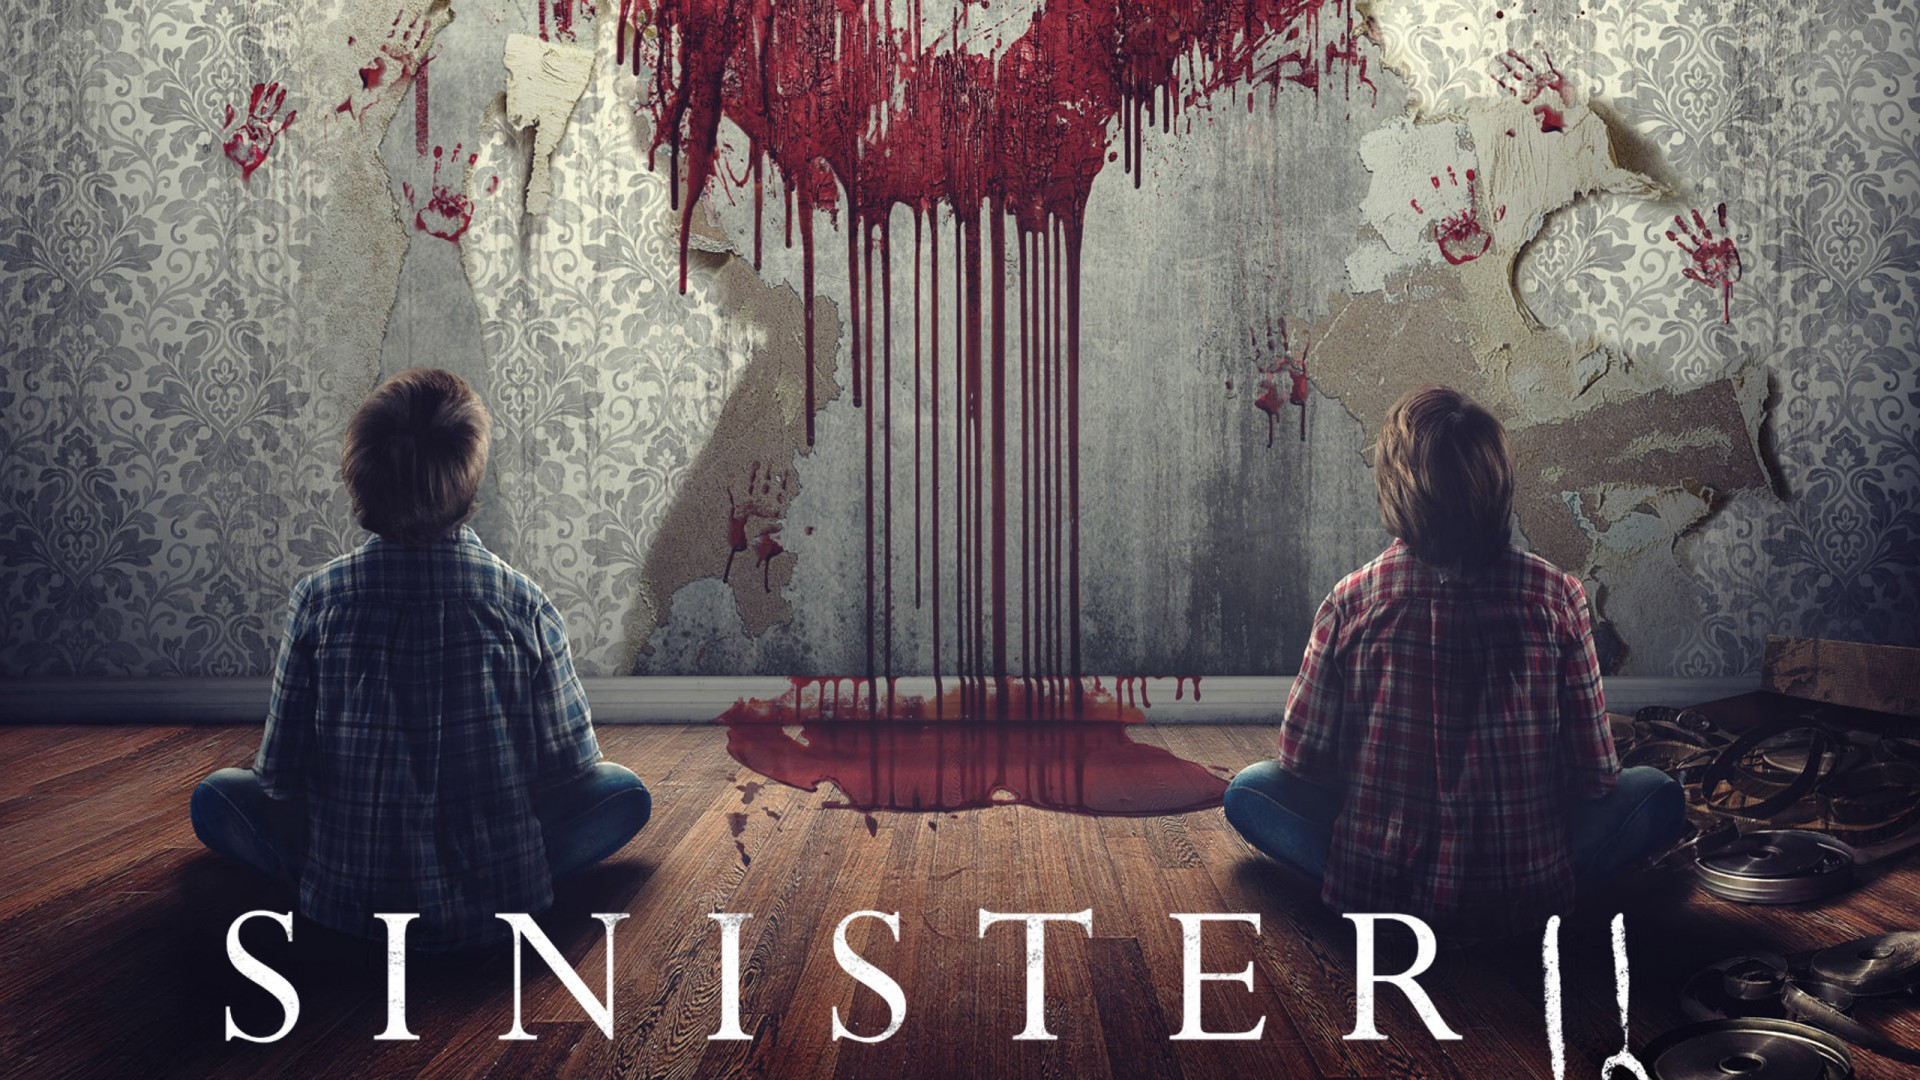 Cute Emoji Wallpaper Iphone Sinister 2 Wallpapers Hd Wallpapers Id 14998